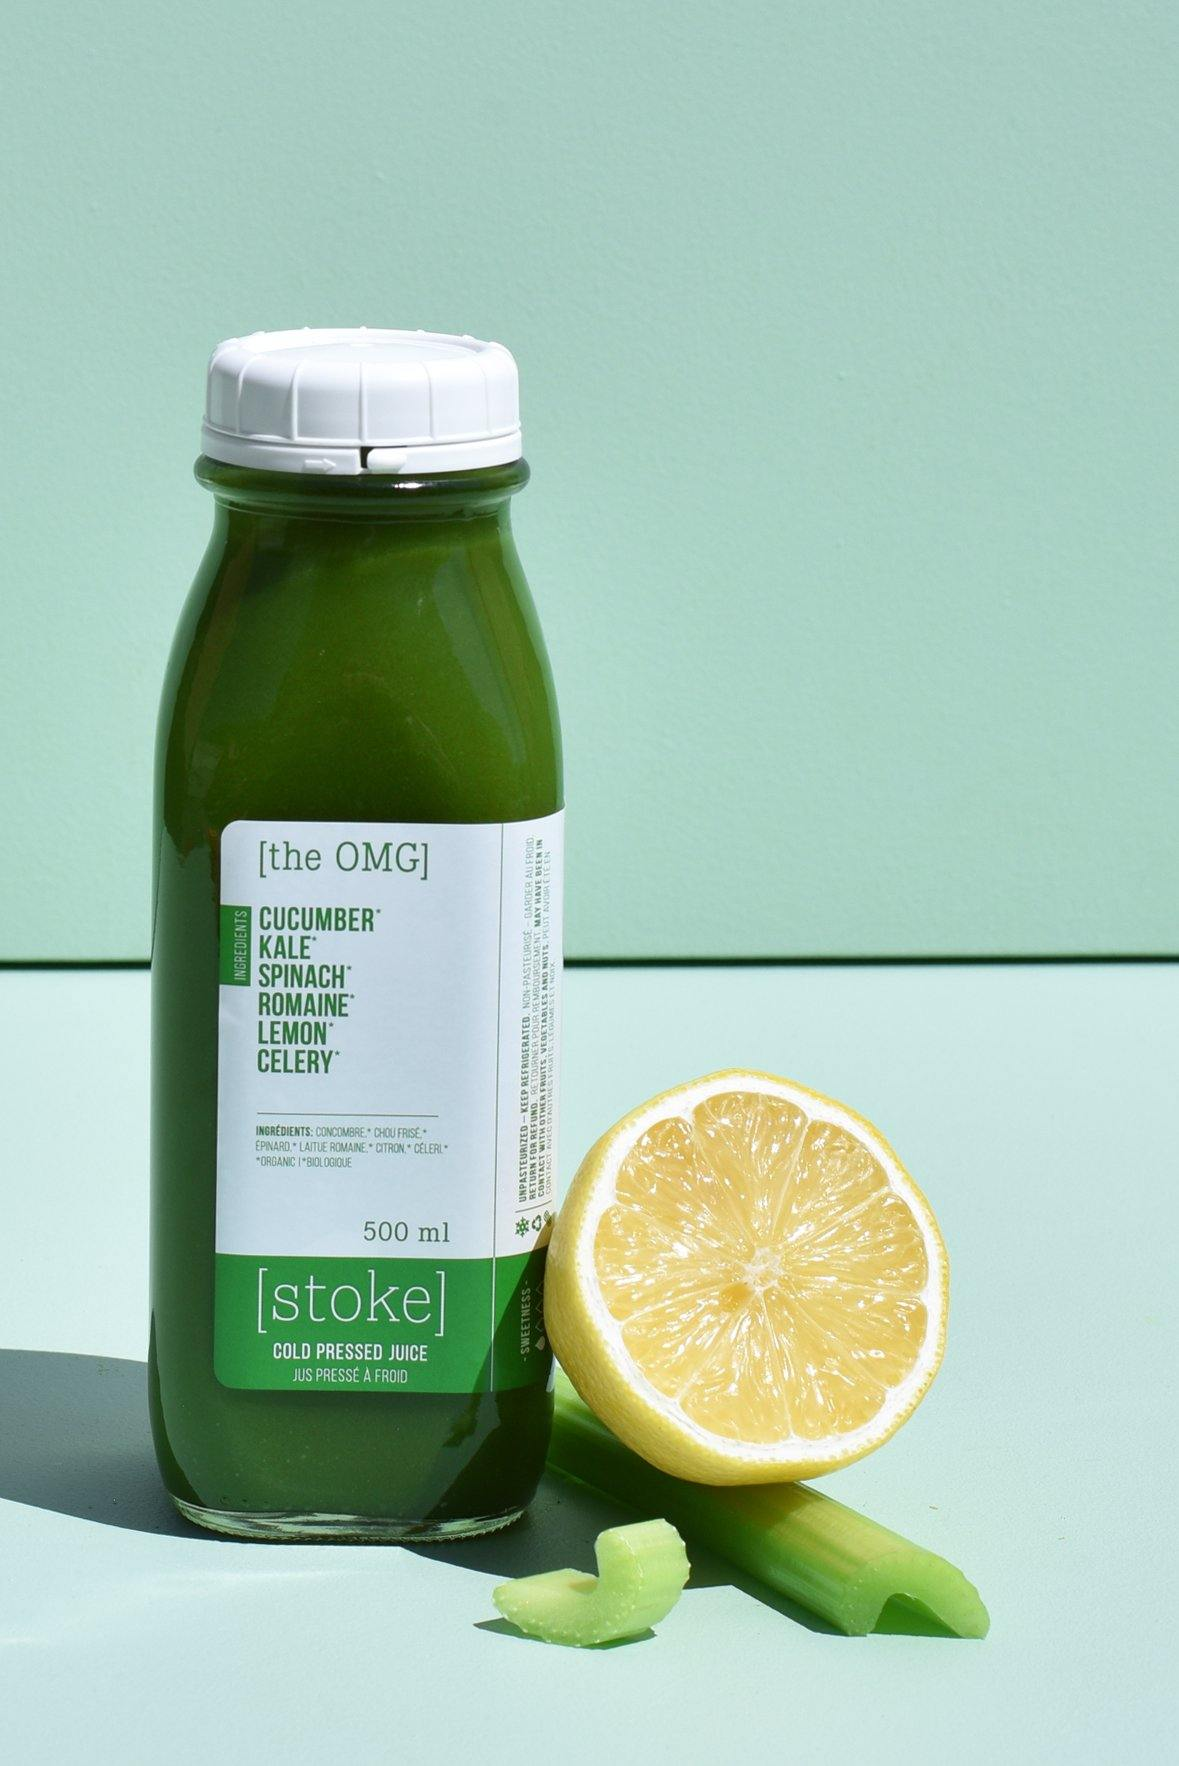 [ the OMG ] cold pressed juice with romaine and kale